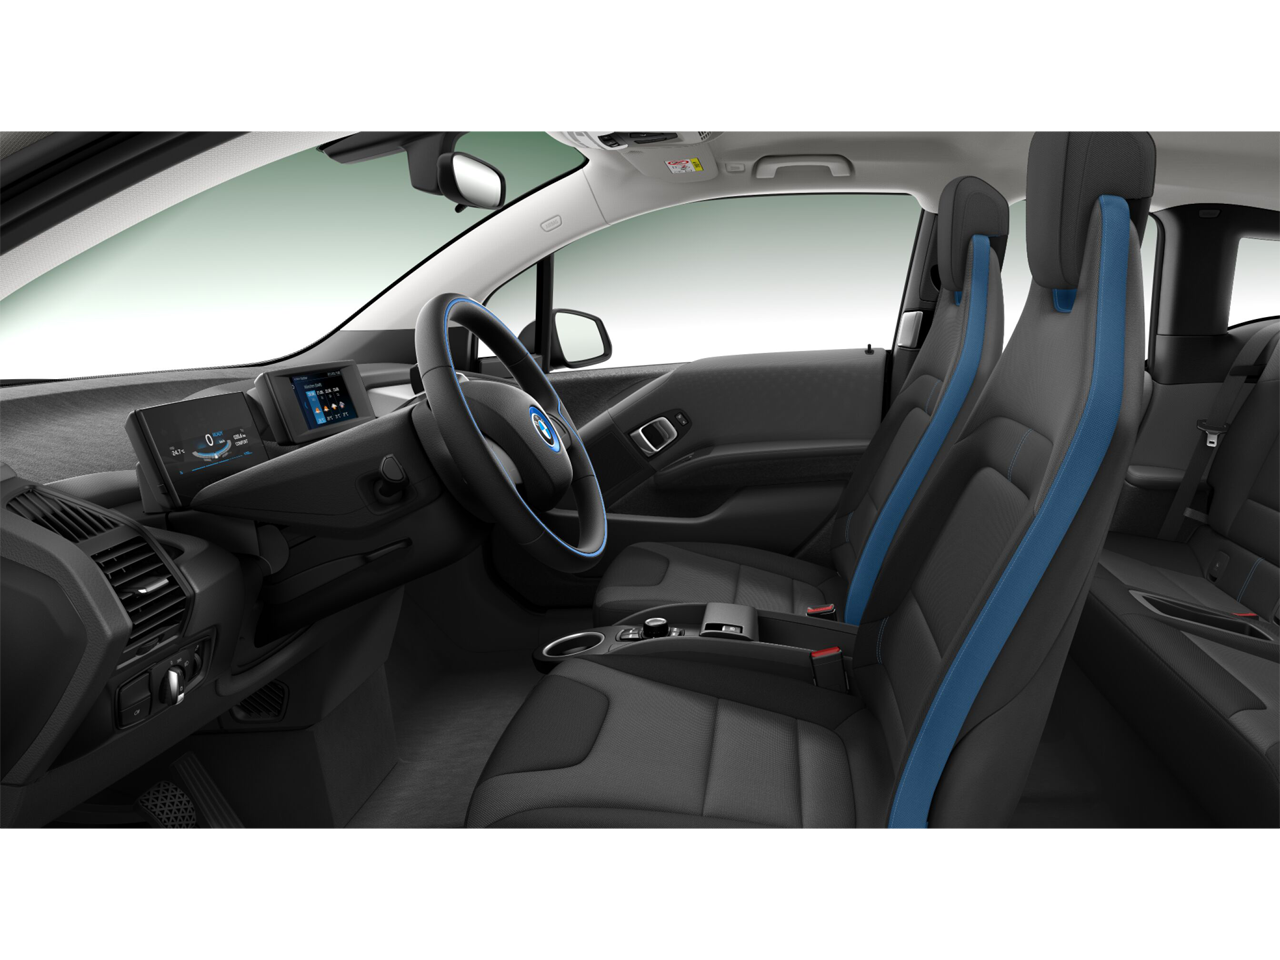 BMW i3 elektrisch private lease 125 en 135 kW/kWh